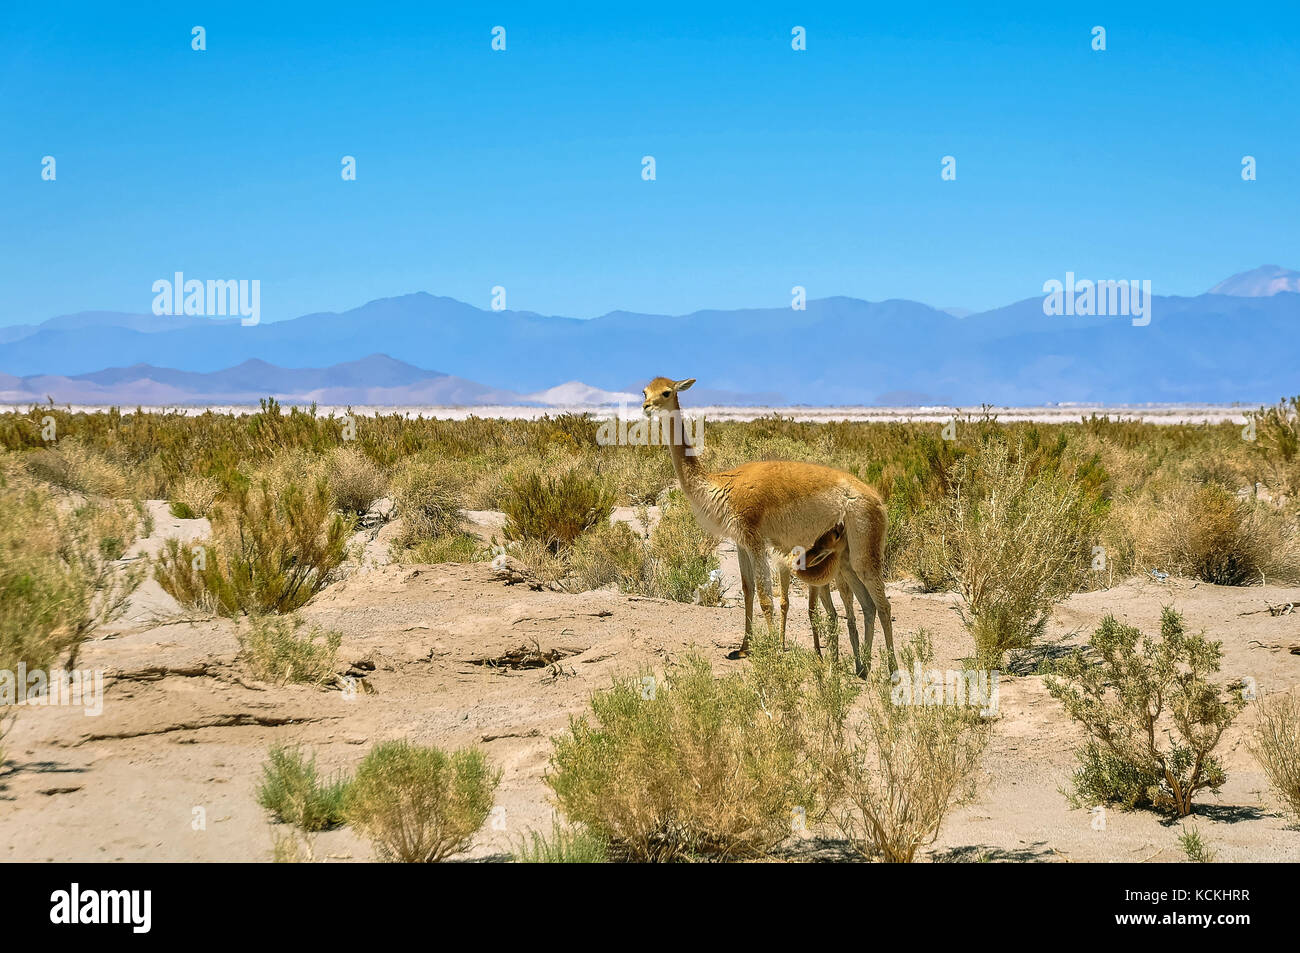 A lama mother feeds her child in northern Argentina - Stock Image